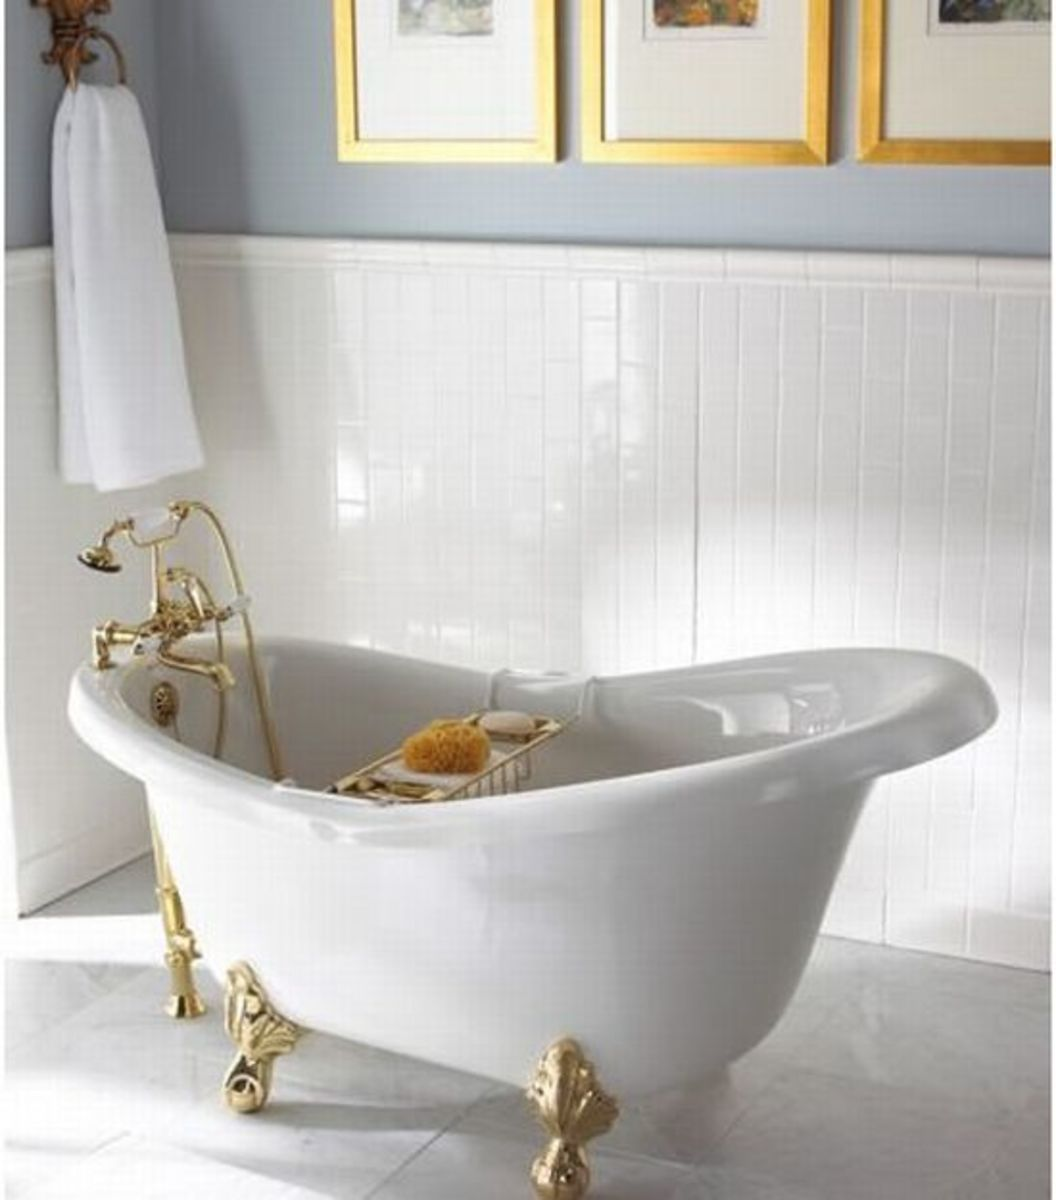 Small bathtubs are also available as clawfoot tubs.